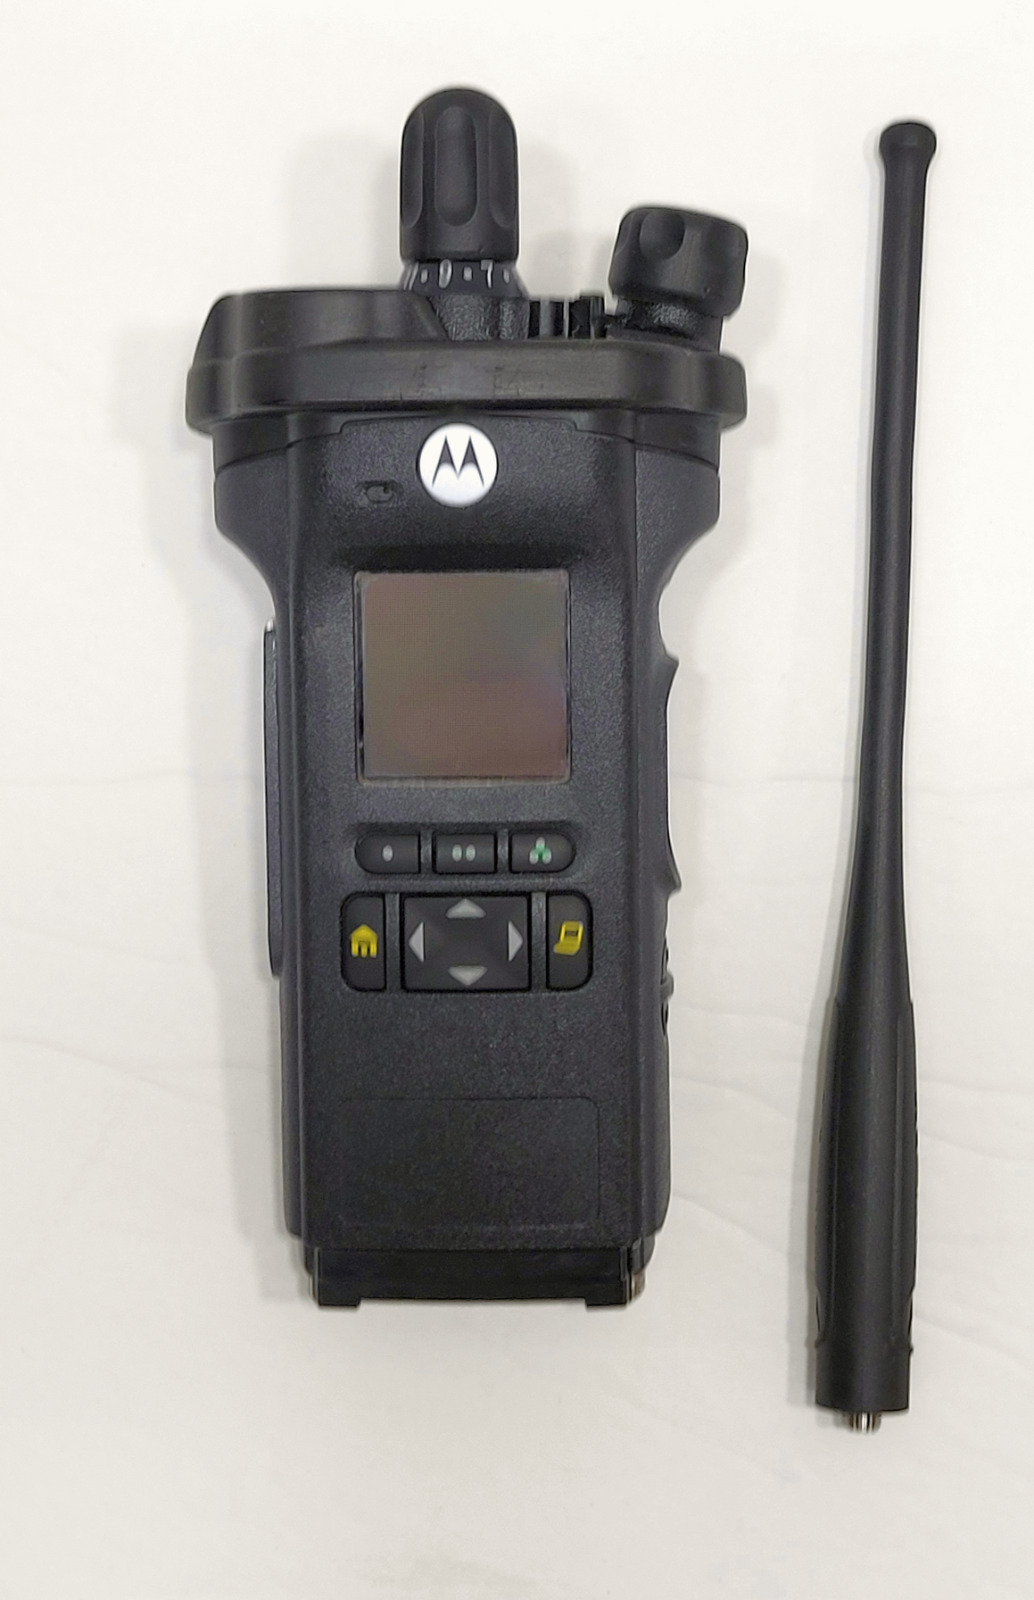 TESTED MOTOROLA APX APX6000 XE 700/800 MHZ DIGITAL RADIO P25 TDMA BLUETOOTH GPS. Available Now for 1999.97